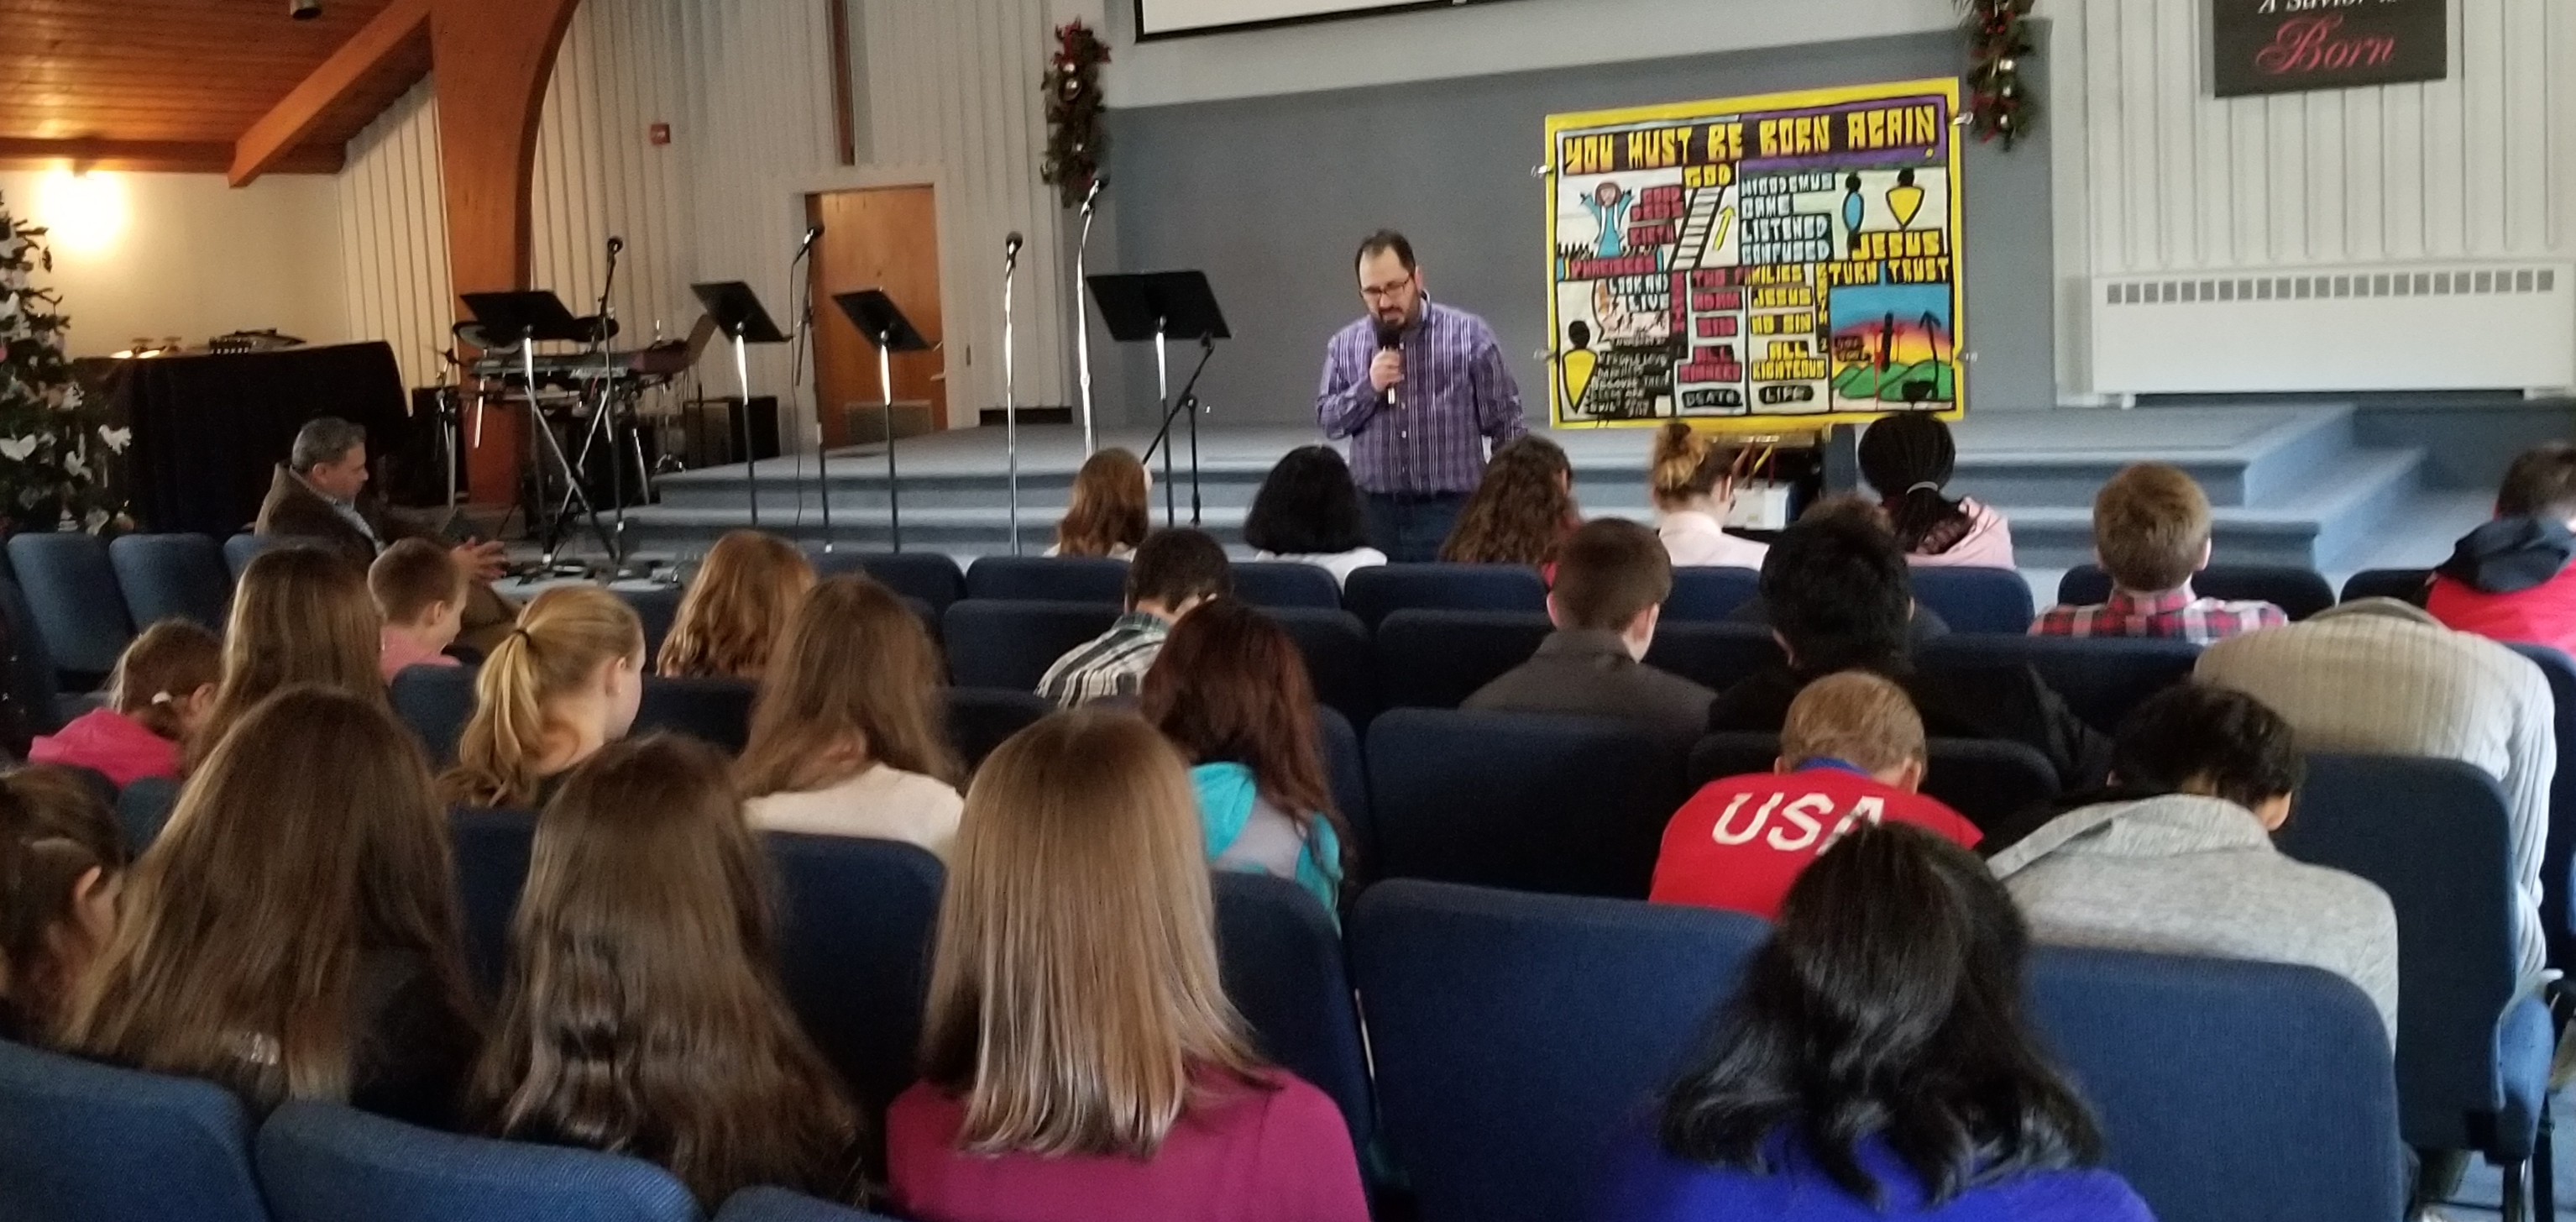 I got to be the Chapel Speaker for the Middle School Students at Abundant Life Christian School in Wilmington, Massachusetts. It was my first time at this school, and it was amazing. This photo shows the students praying with me at the end of my message. Fantastic kids!